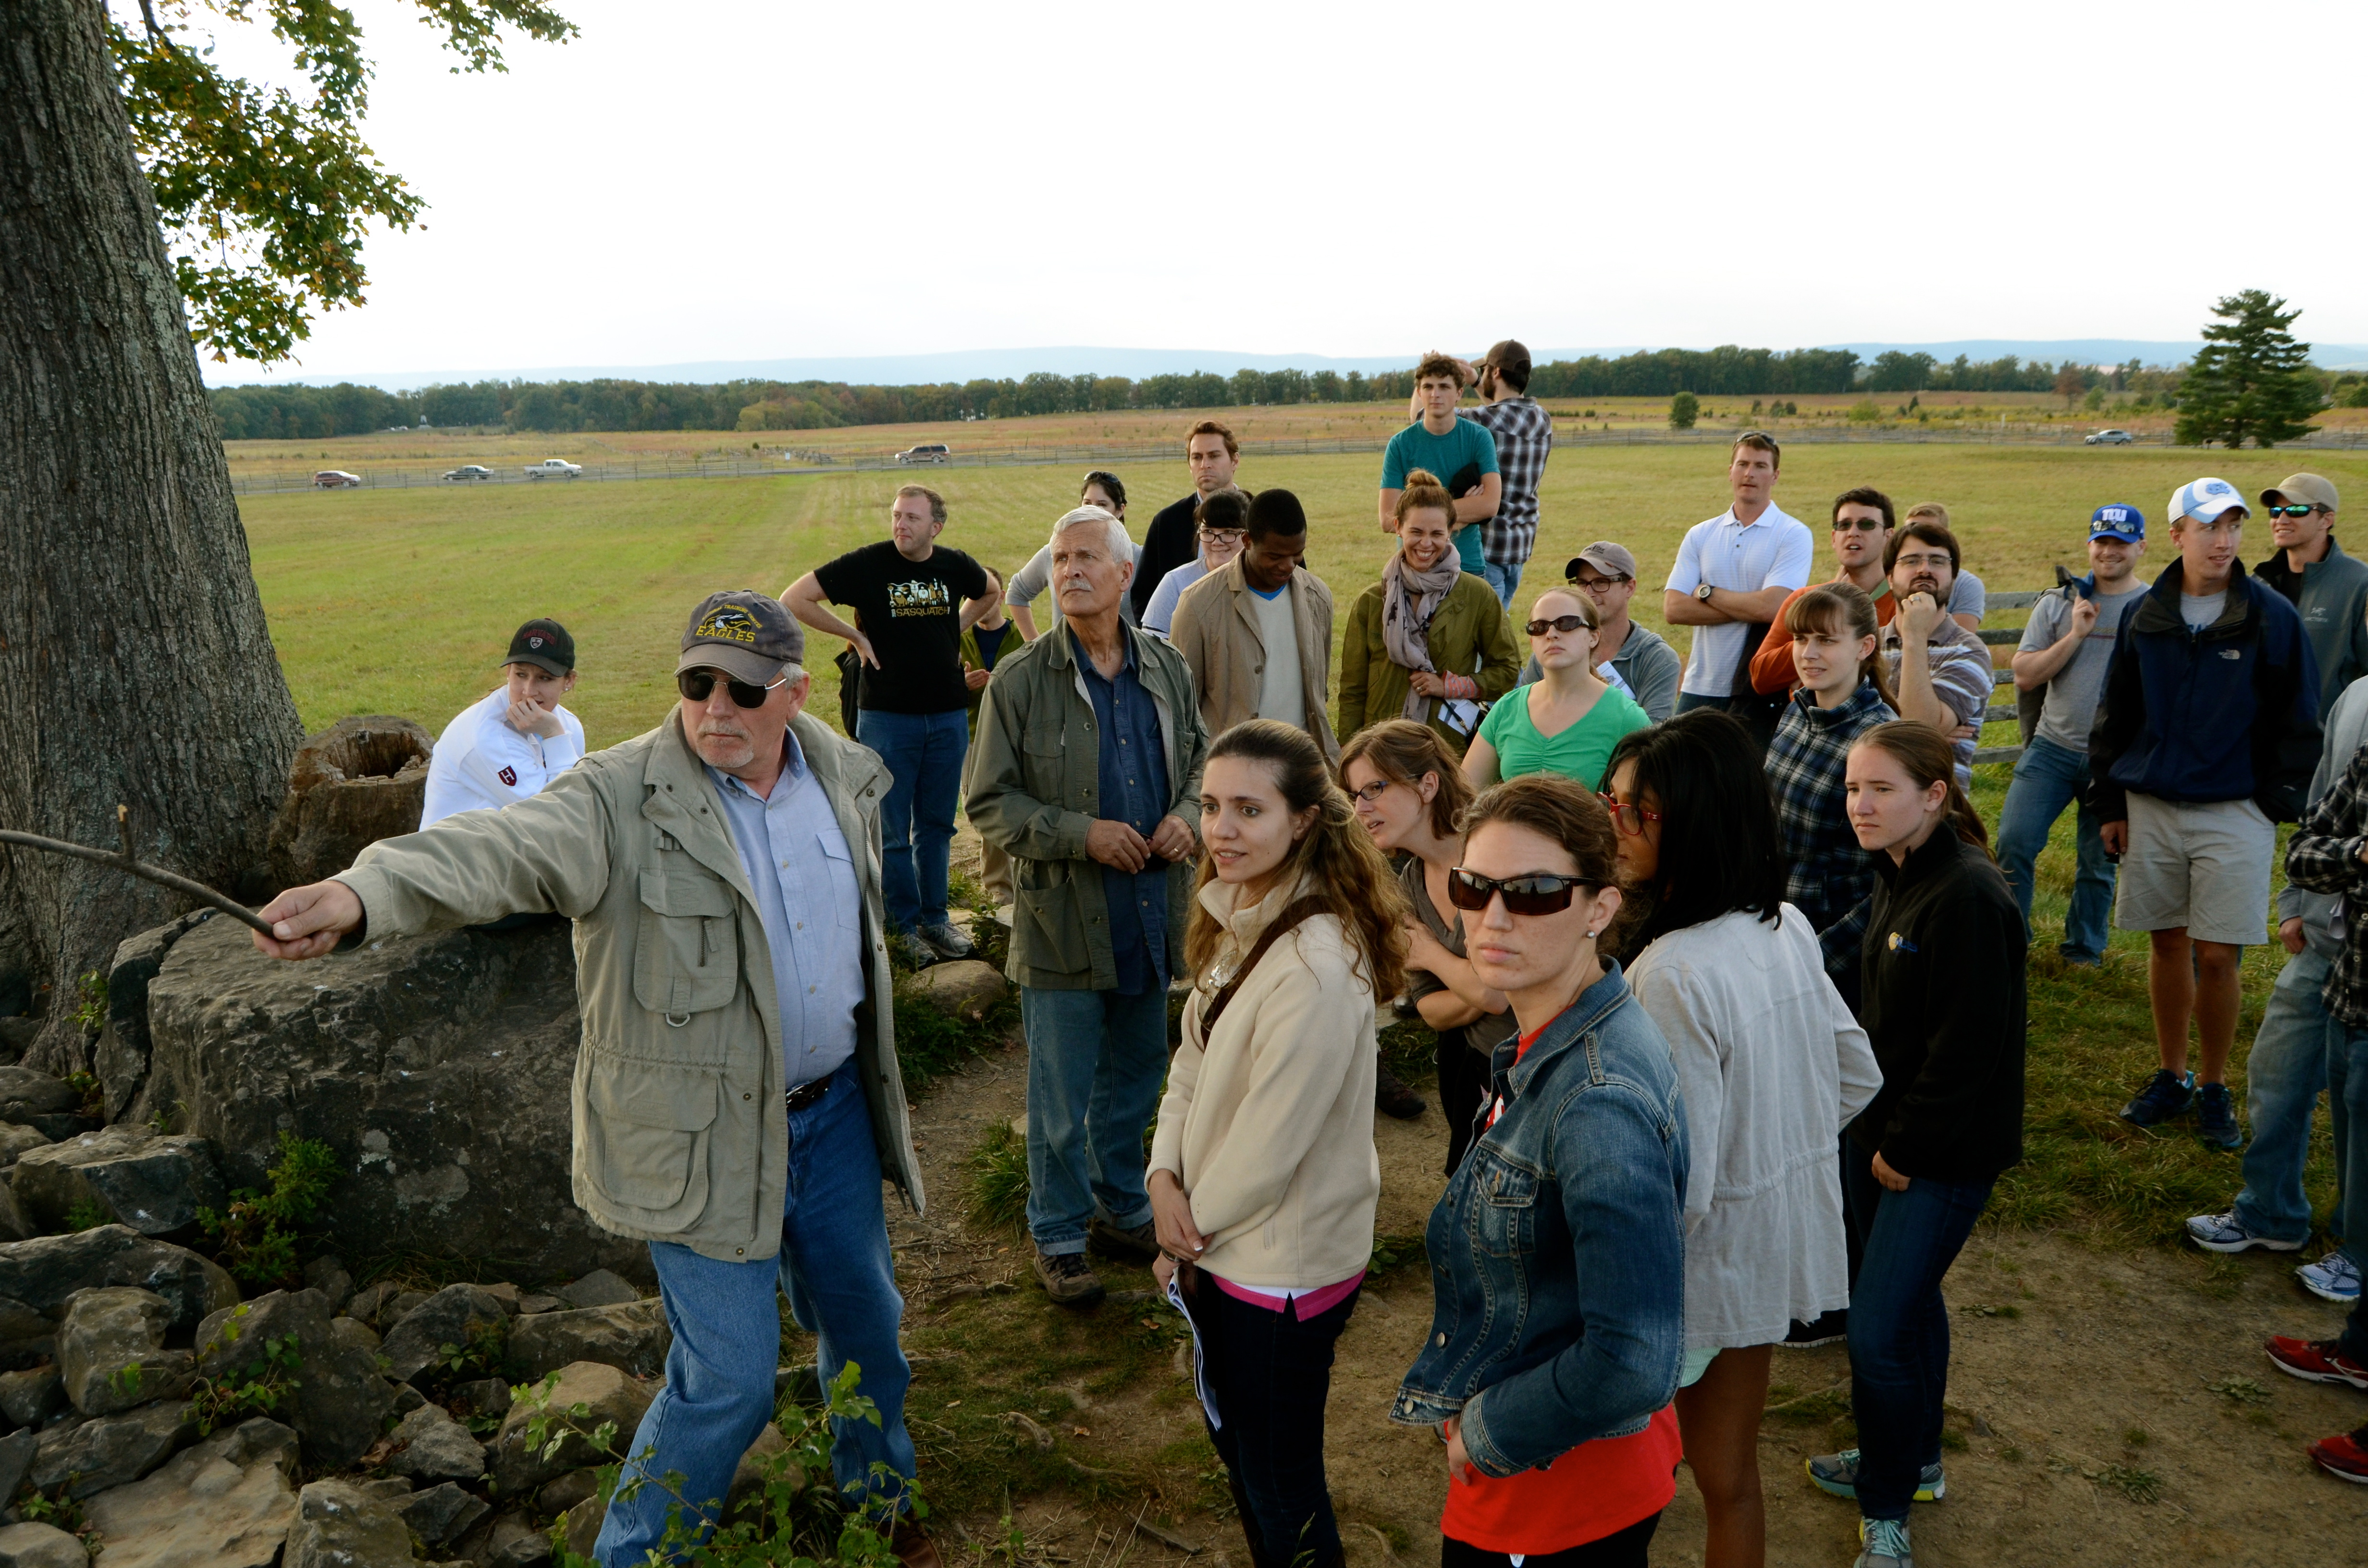 Students and faculty on a trip to Gettysburg